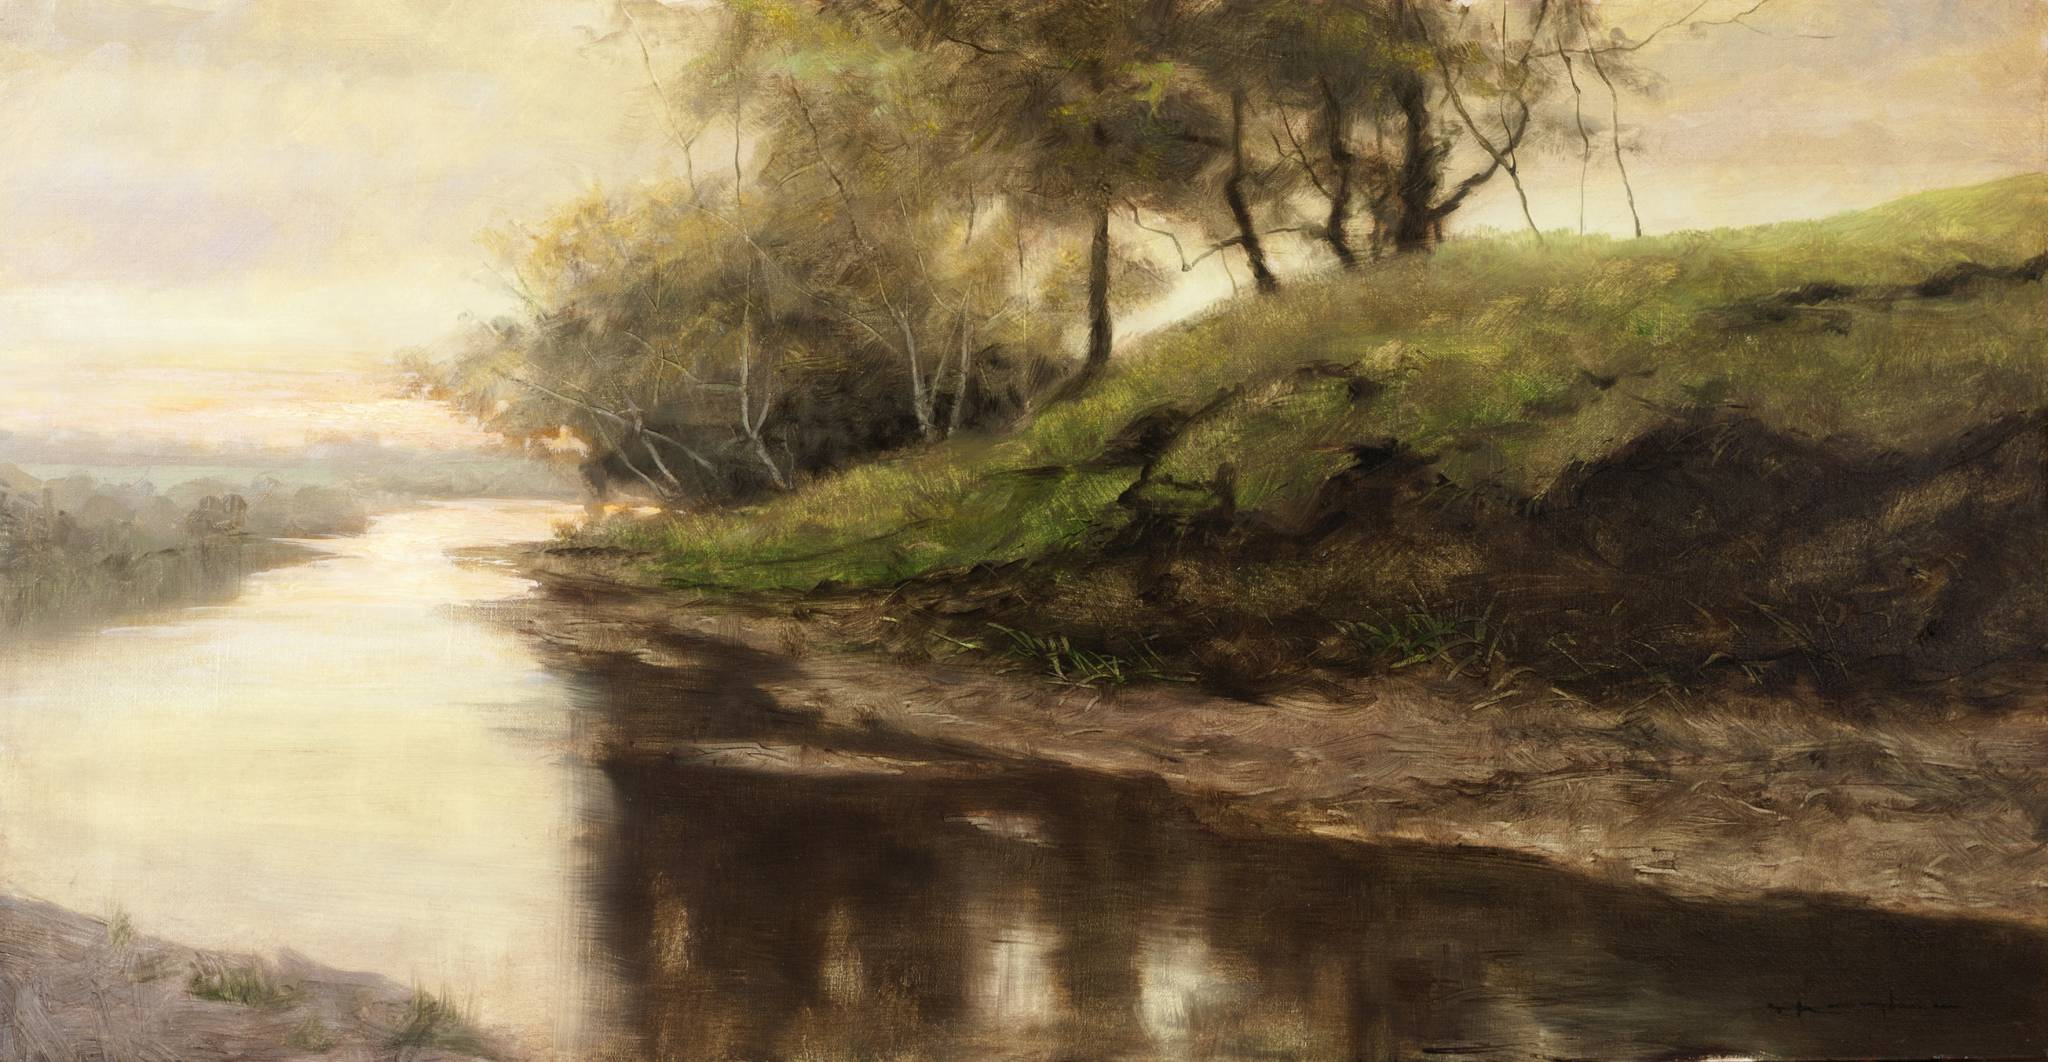 Two Upcoming Landscape Painting Workshops